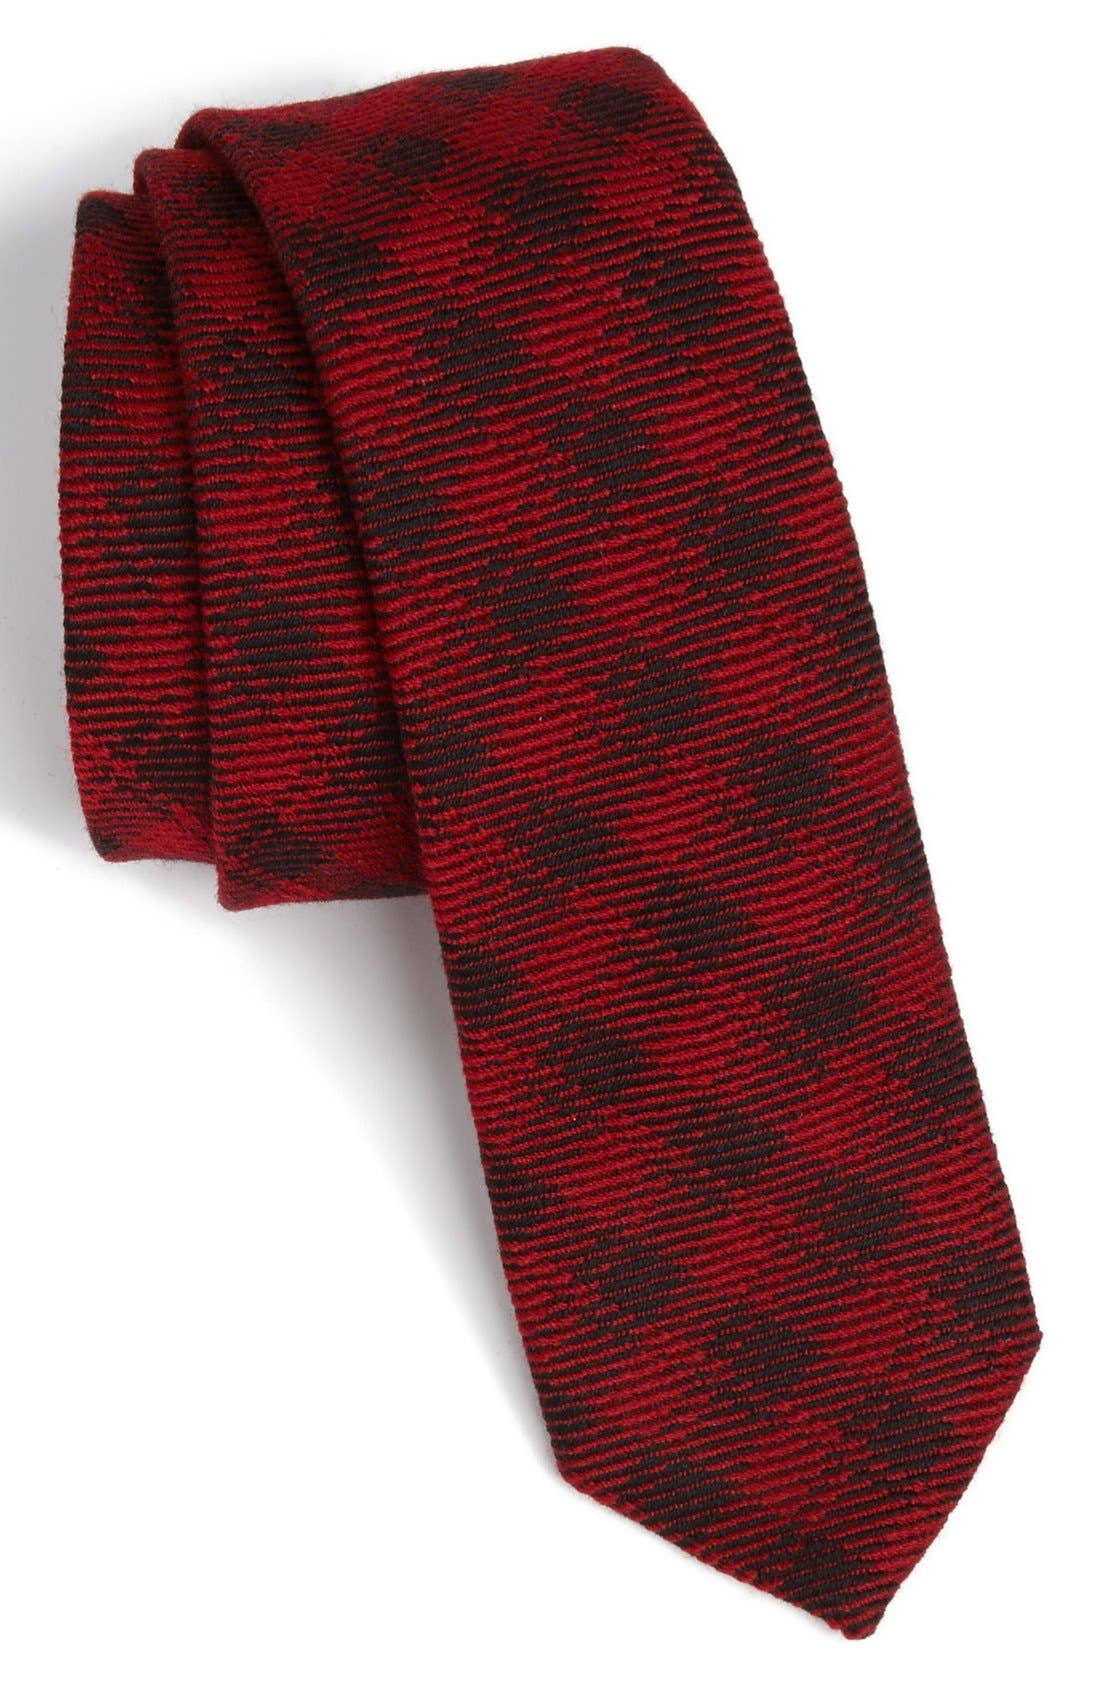 Alternate Image 1 Selected - BOSS HUGO BOSS Woven Wool Tie